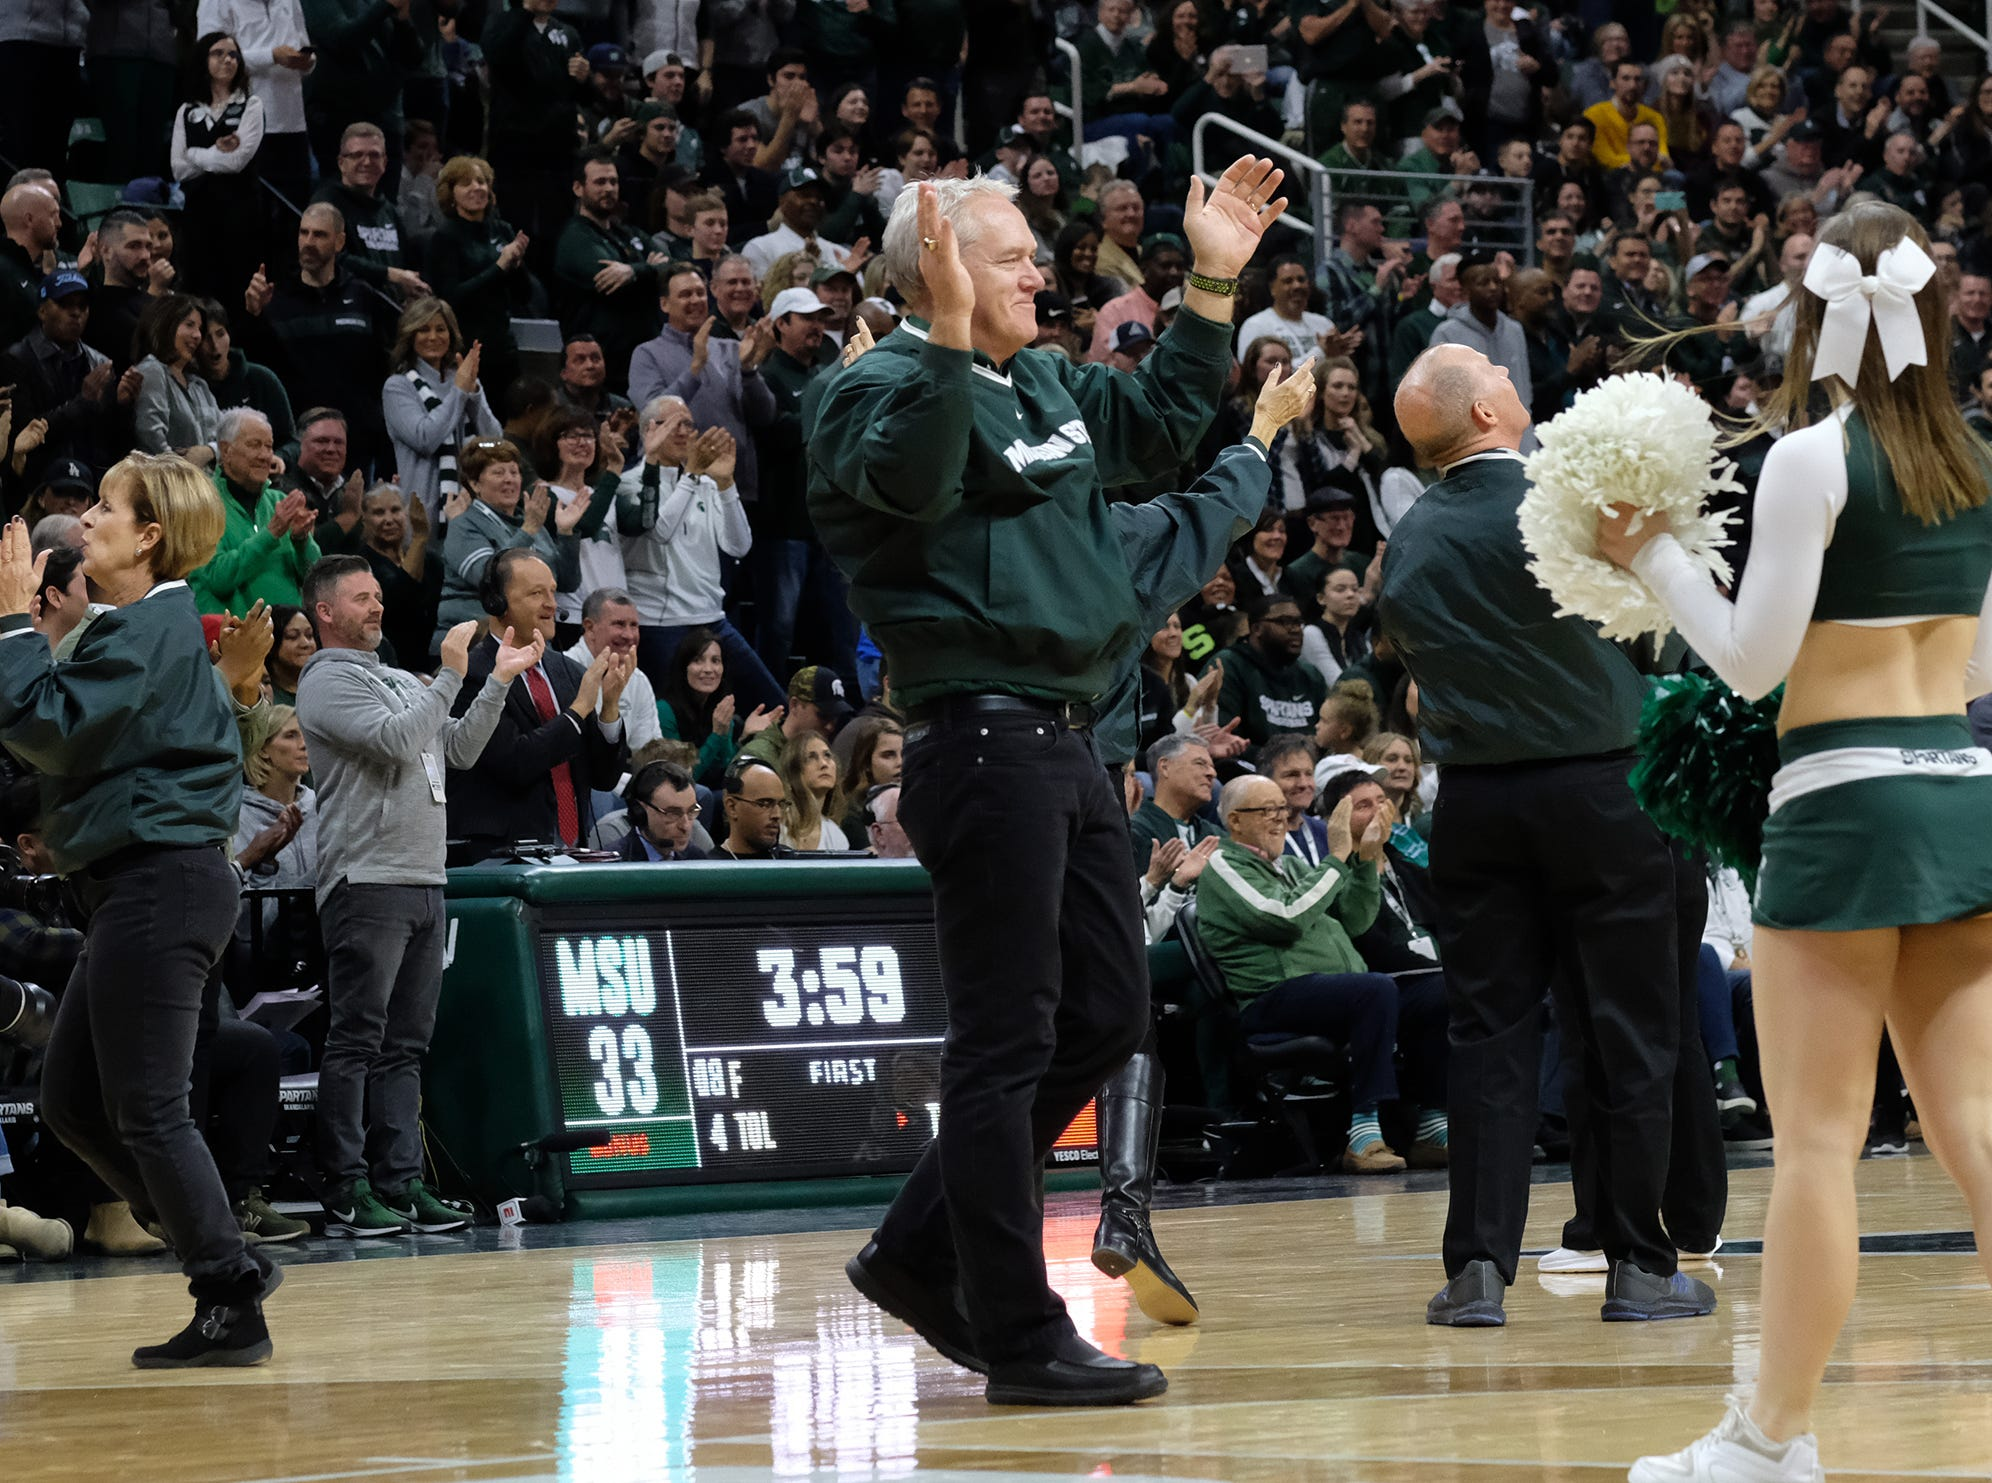 Members of the 1979 MSU cheerleading squad perform at Breslin Center Saturday, Feb. 9, 2019.